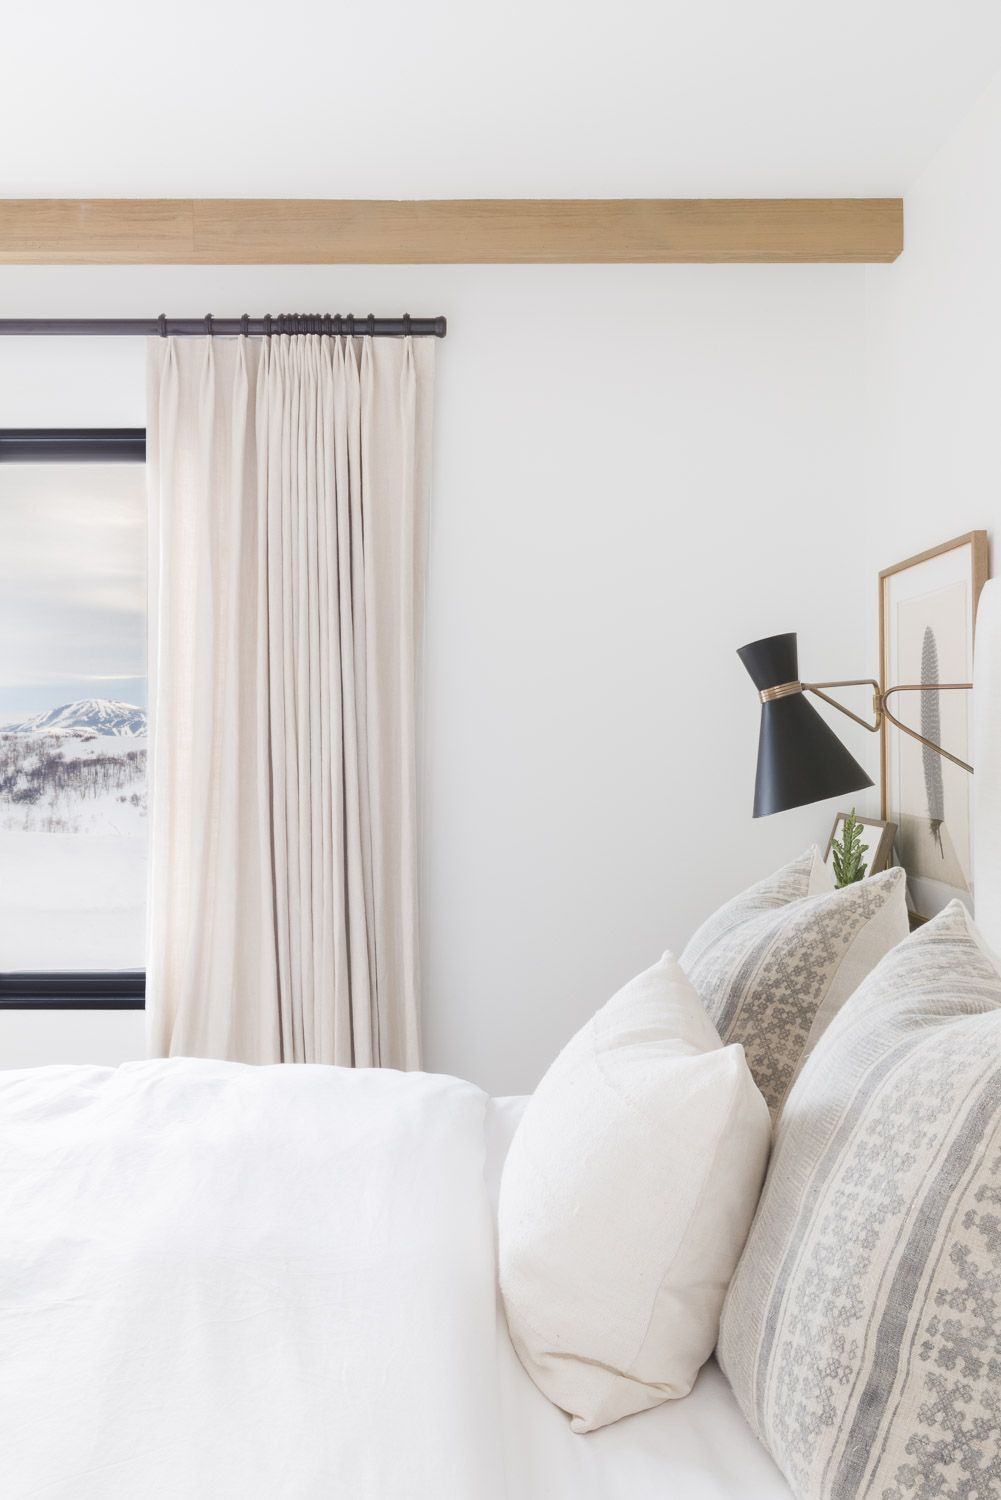 ELLE DECOR MOUNTAIN RANCH PROJECT Luxurious bedrooms